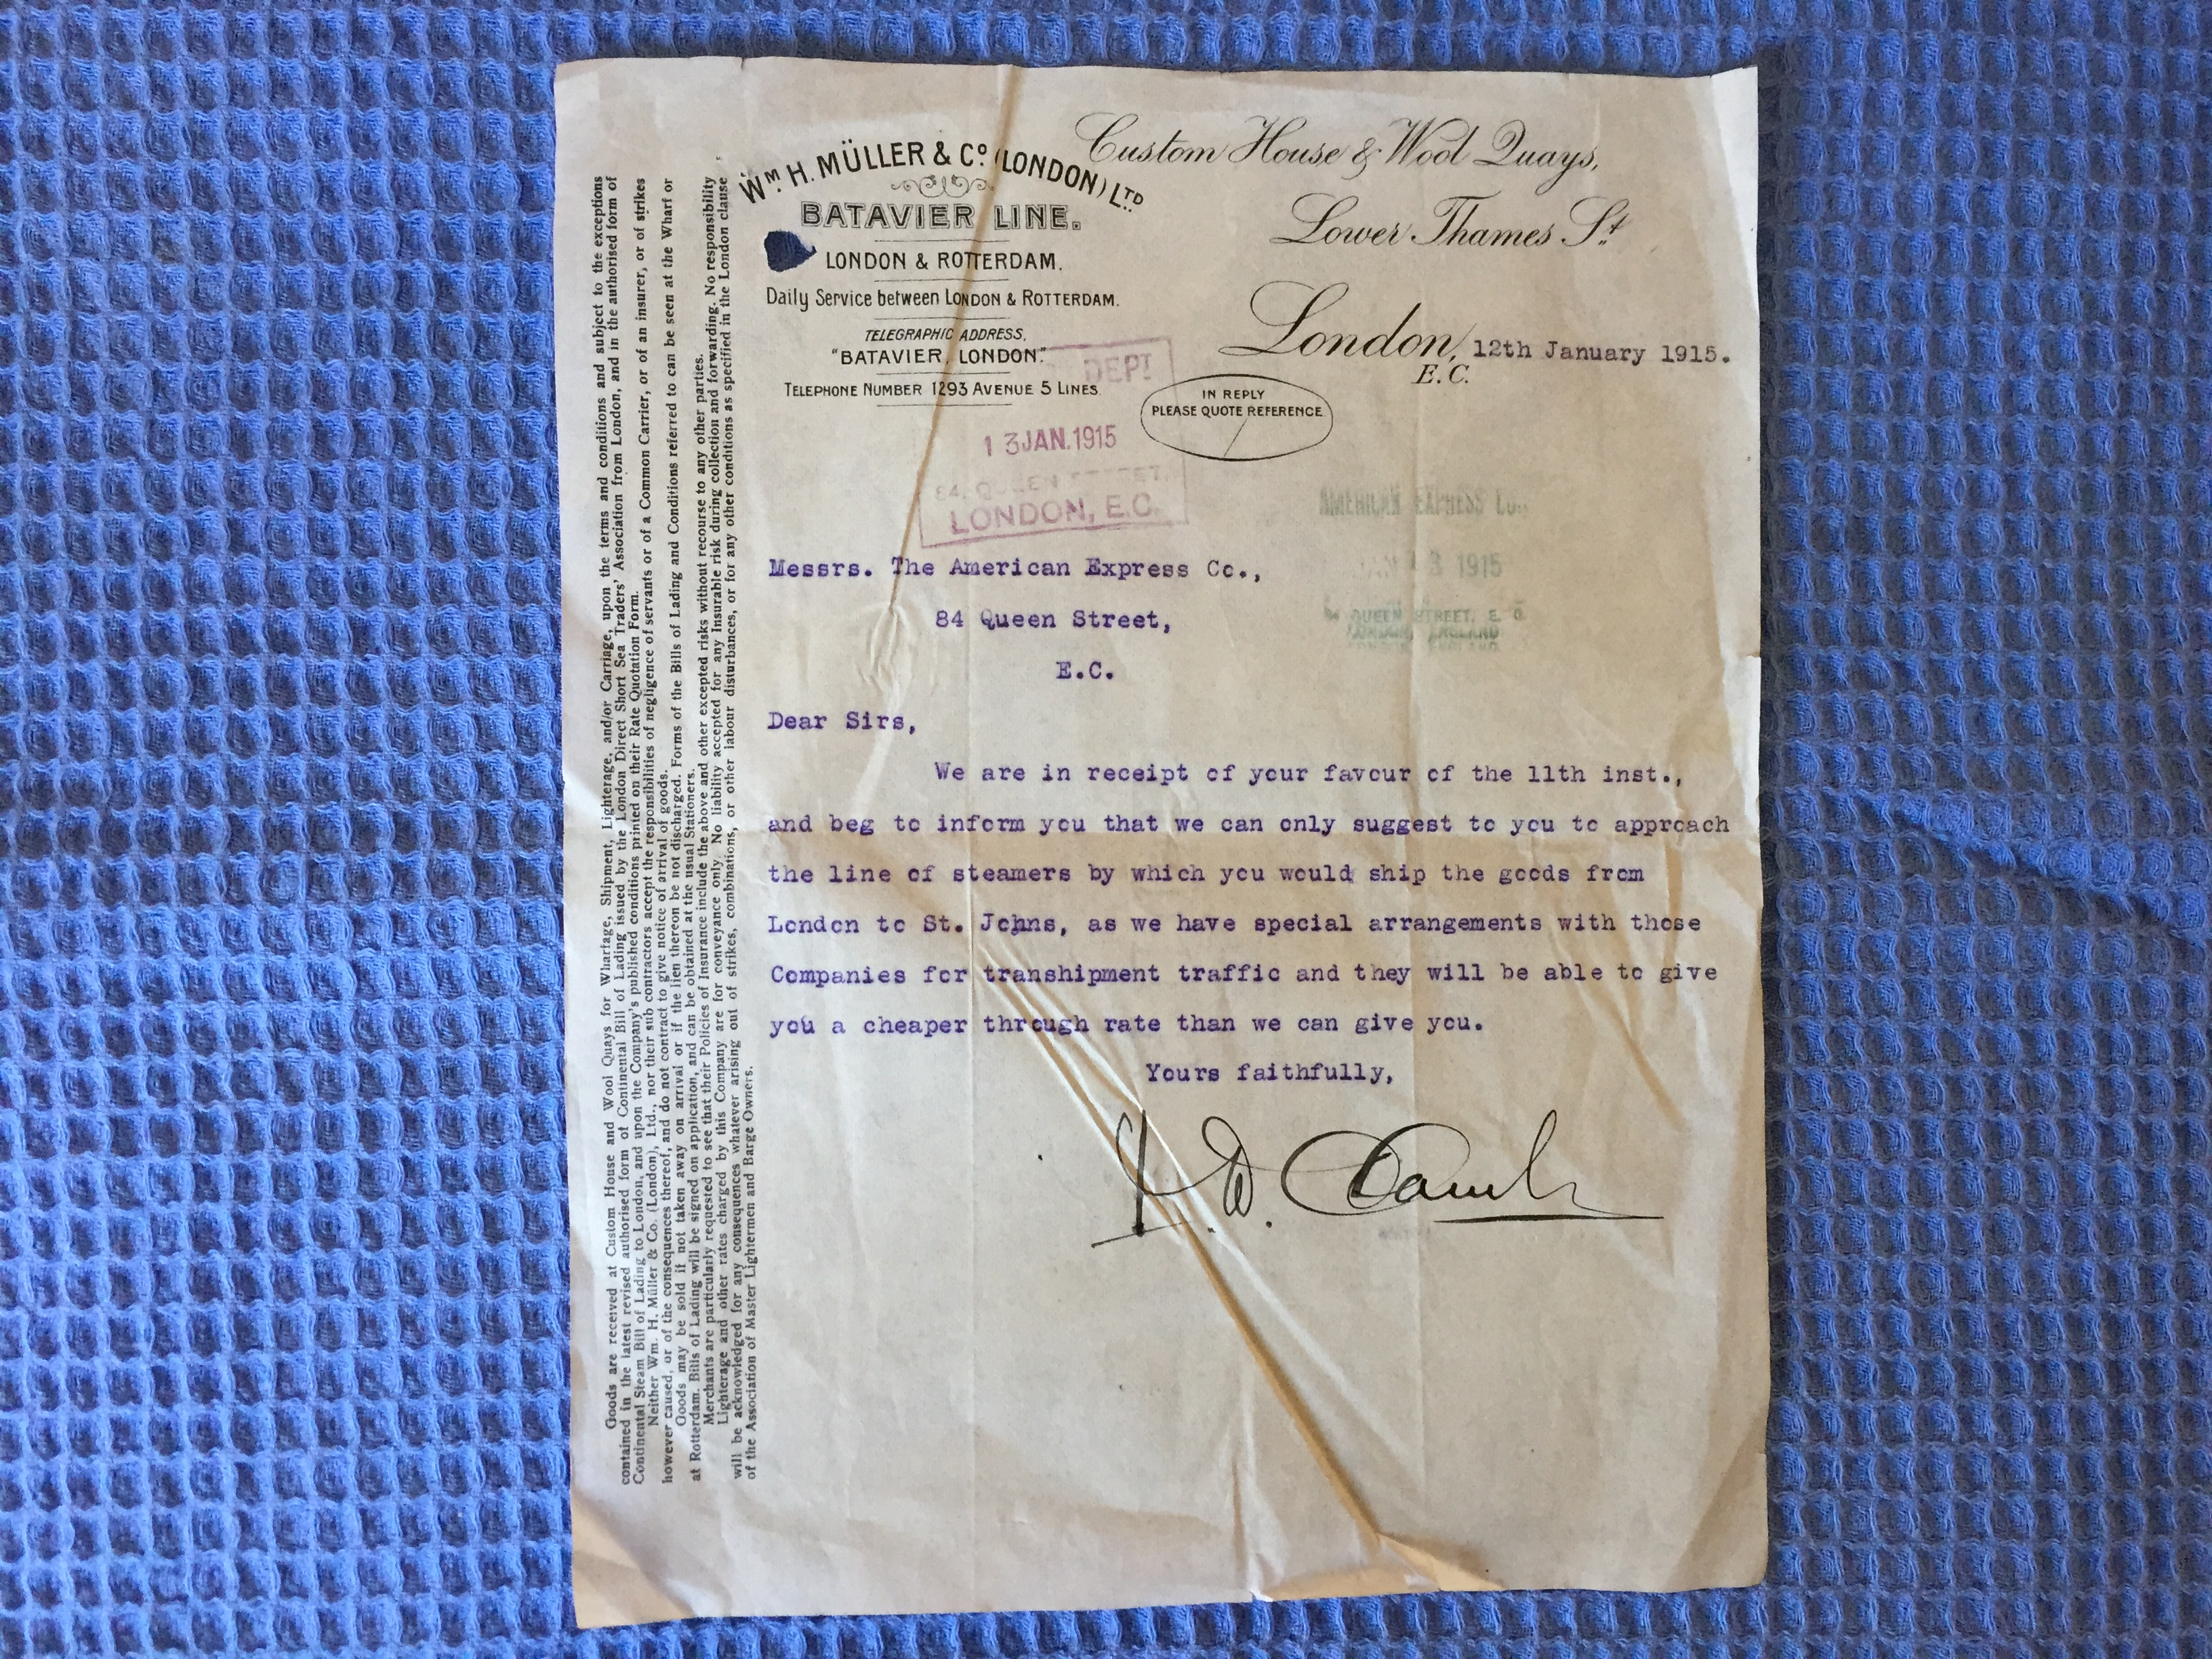 VERY EARLY CUSTOMS LETTER FROM 1915 FOR THE BATAVIA LINE SHIPPING COMPANY